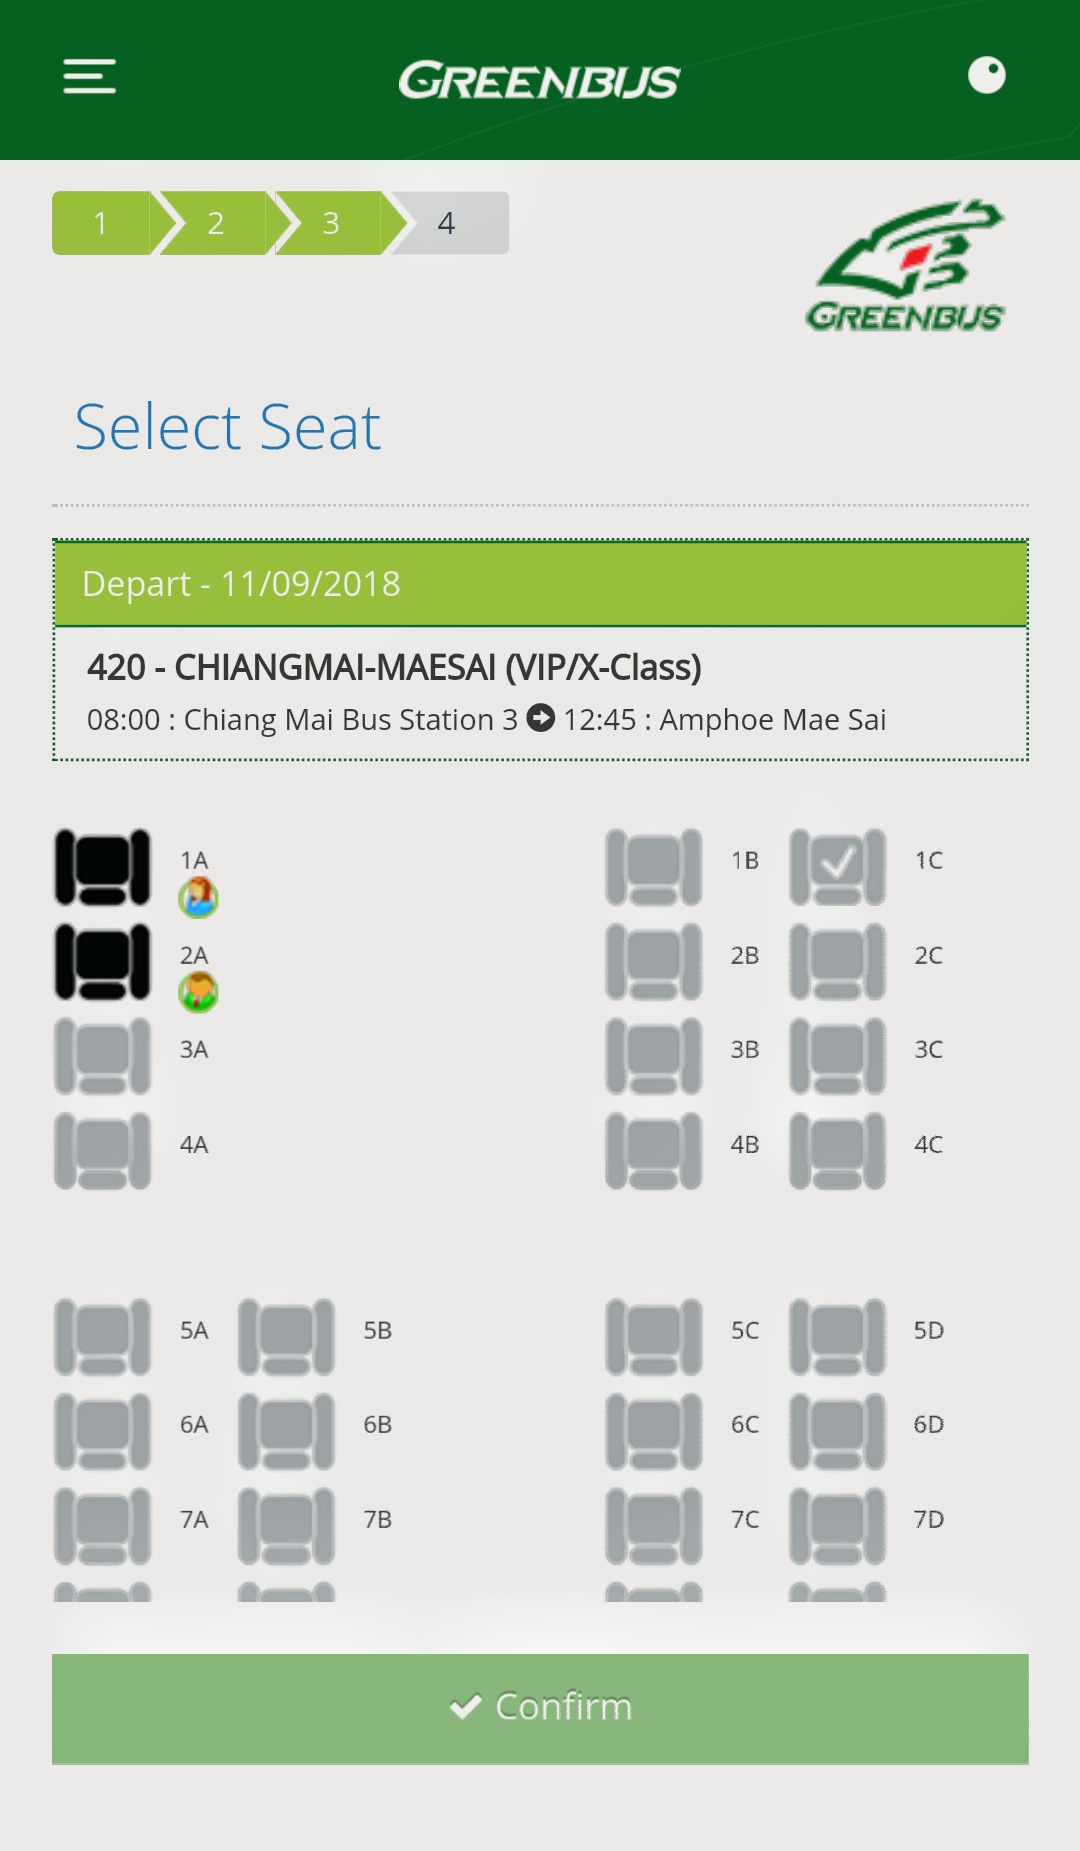 Select where you want to sit.  First 4 rows are VIP/1st class seats with exra leg room